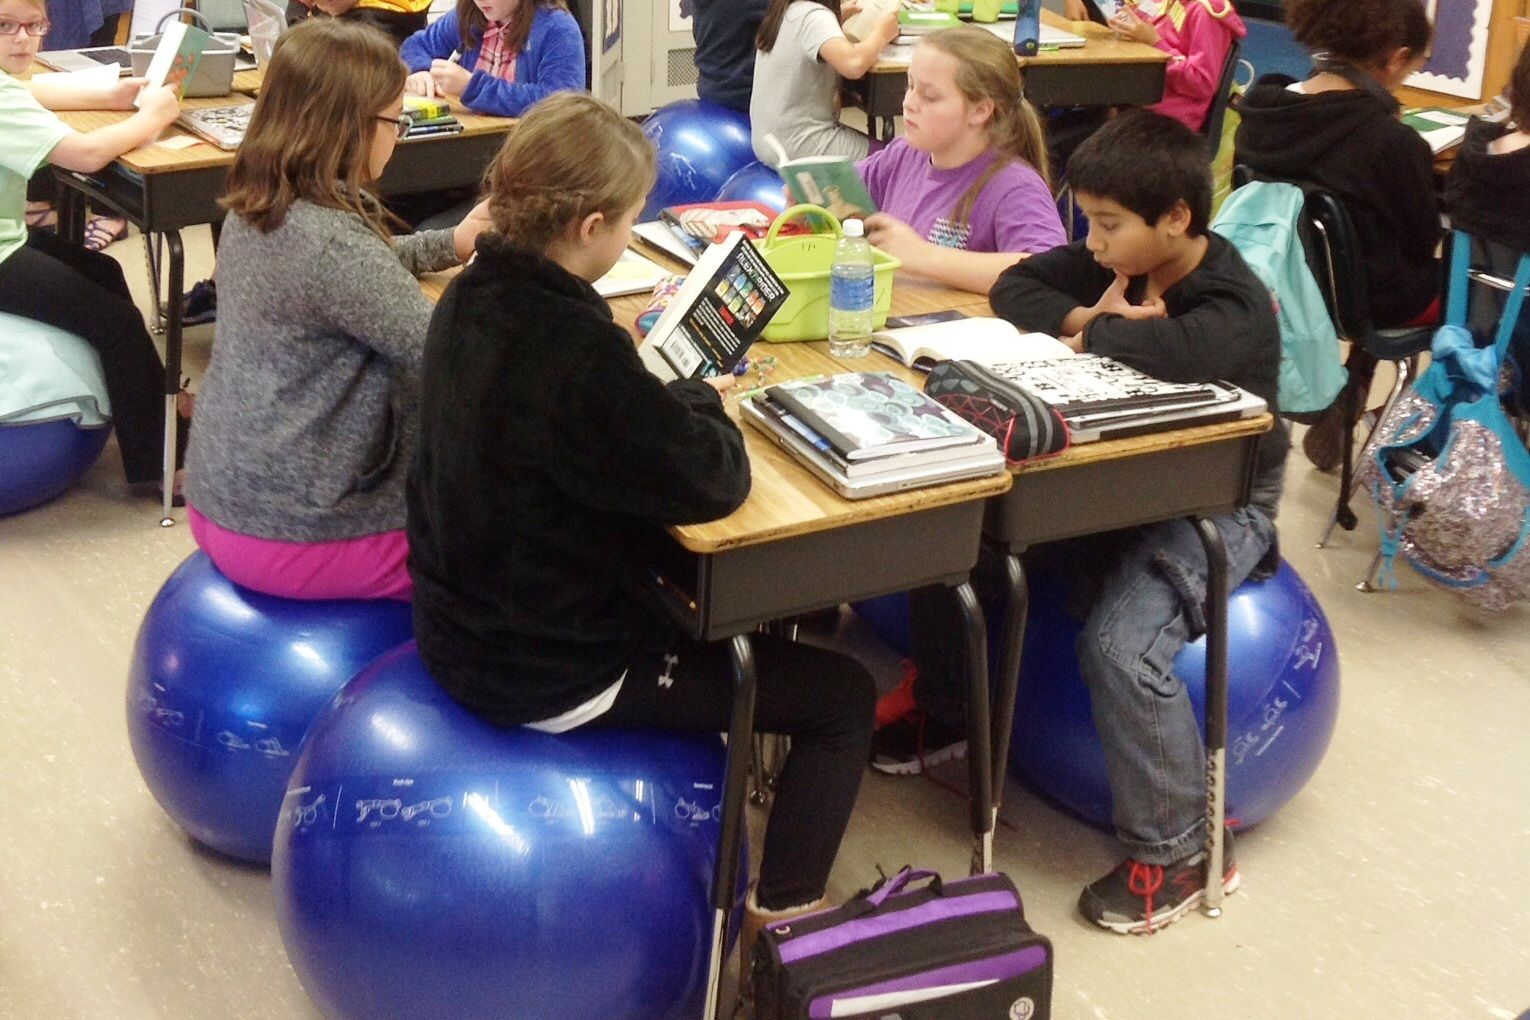 Teachers implement action-based learning | News | morganton.com